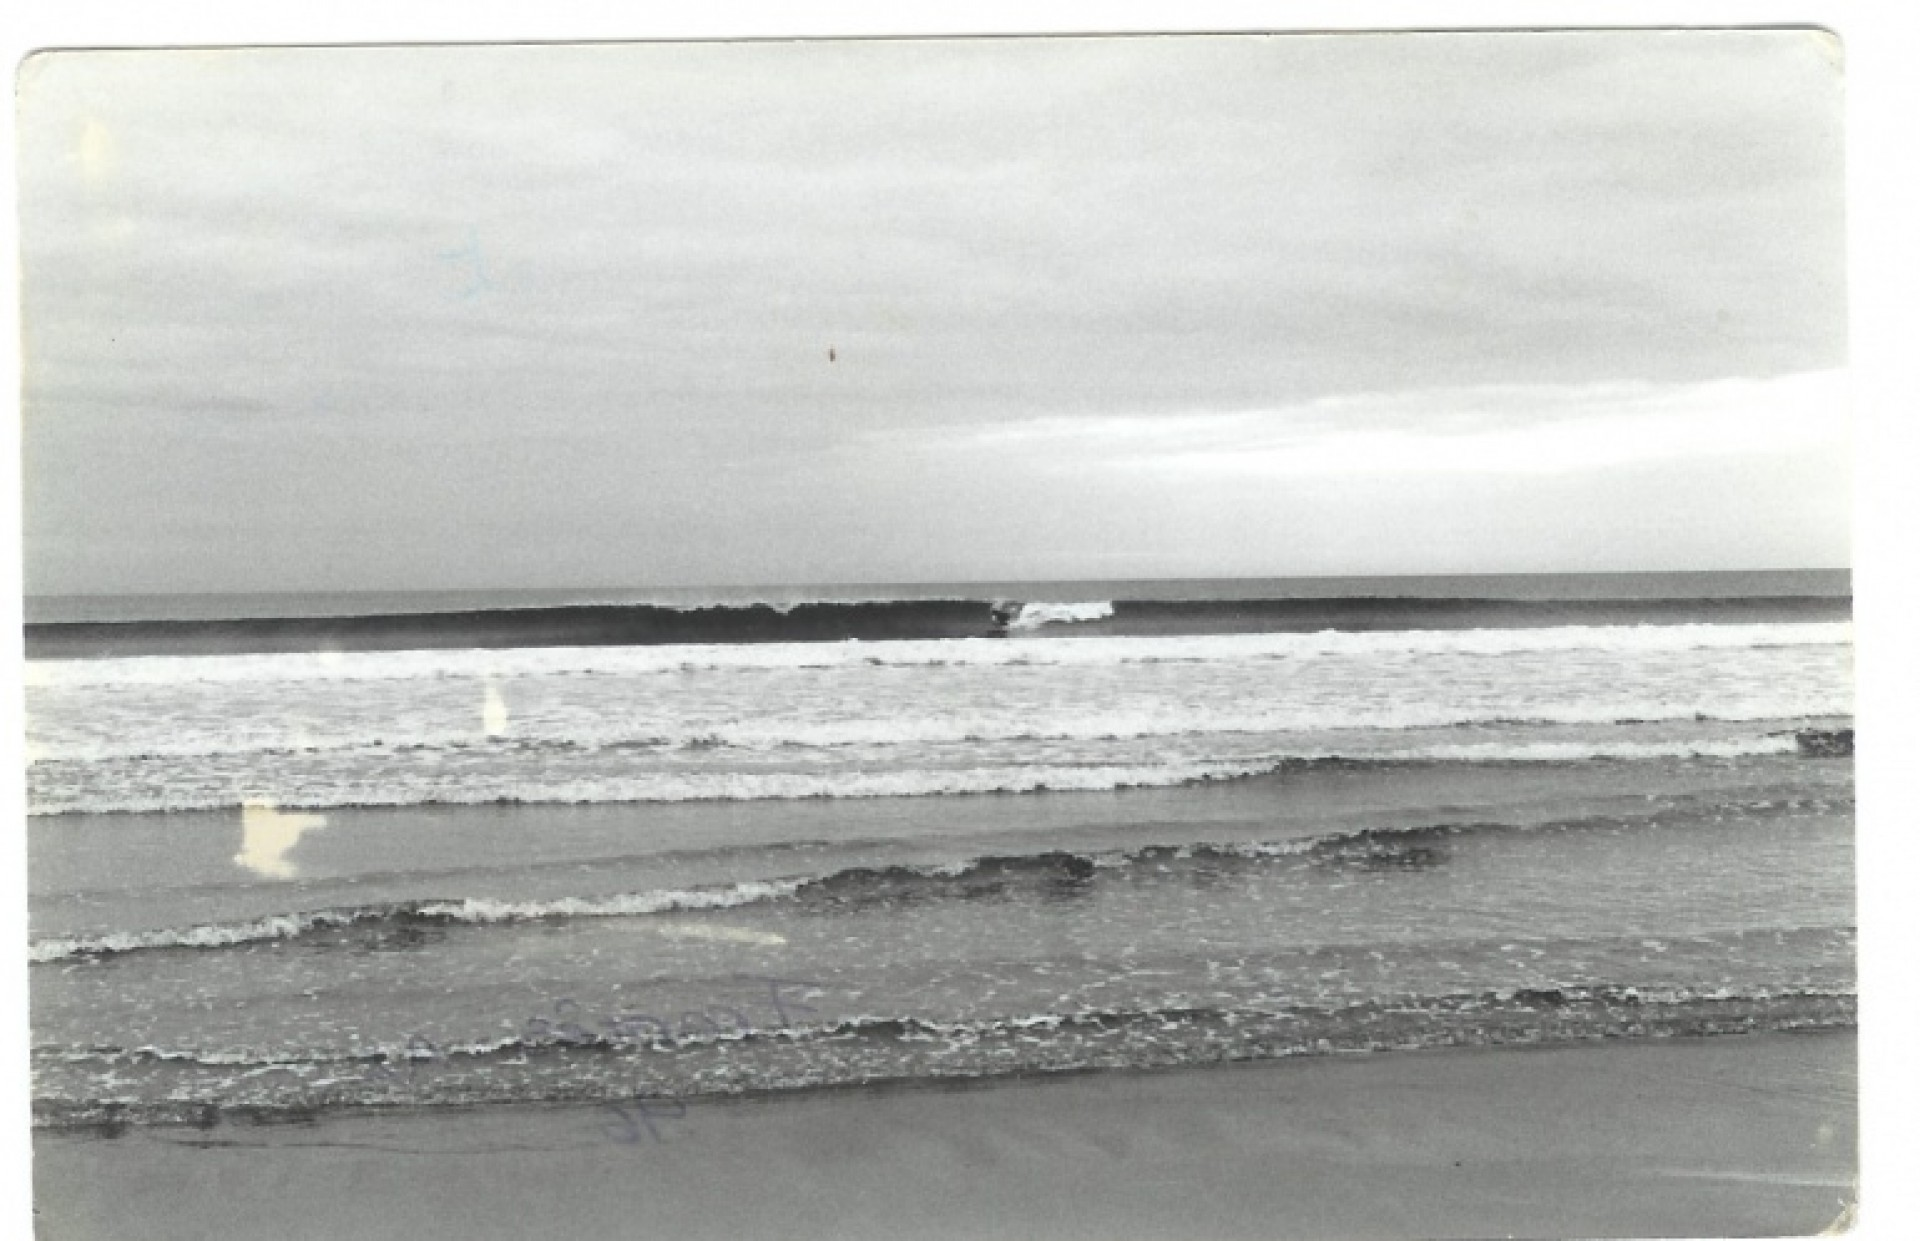 39's photo of Pease Bay